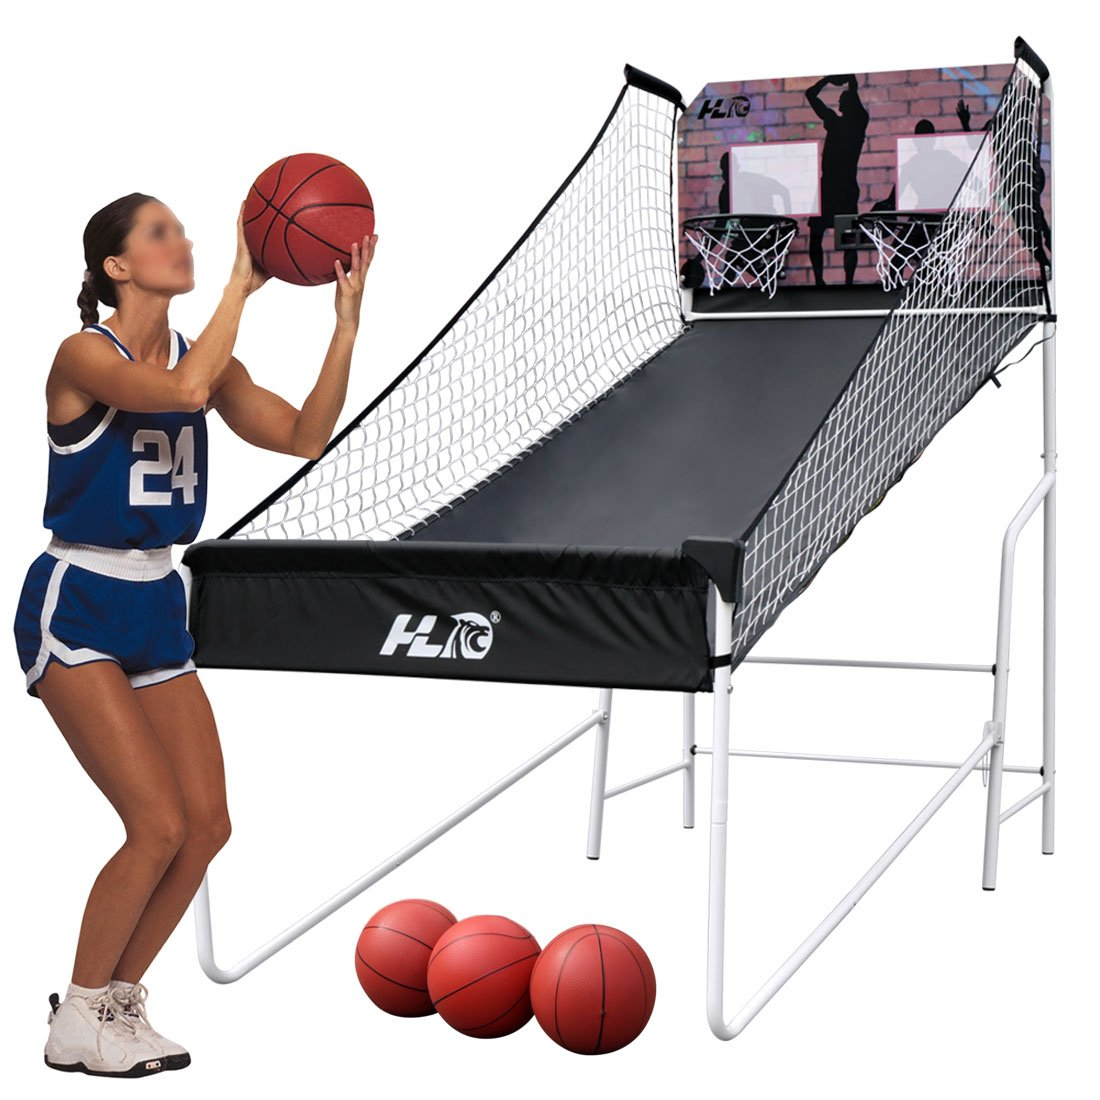 HLC Sports Double Shot 8-in-1 Two-player Arcade Electronic Basketball System by HLC